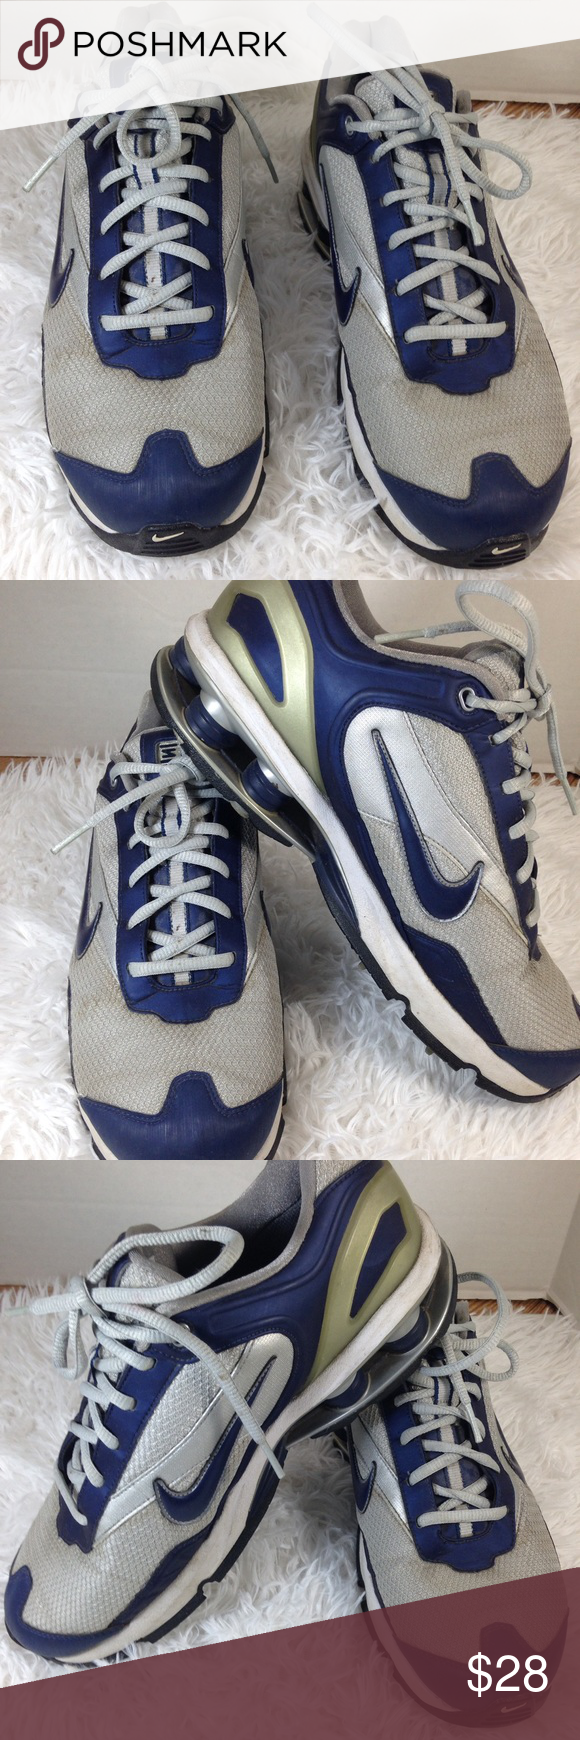 buy online 87ac0 610de Men s Nike Shox Golf Shoes •Good Condition •Worn A Few Times •Nike Shox Golf  For Stability And Extreme Comfort •T C (Traction   Contact) •Mesh And  Synthetic ...